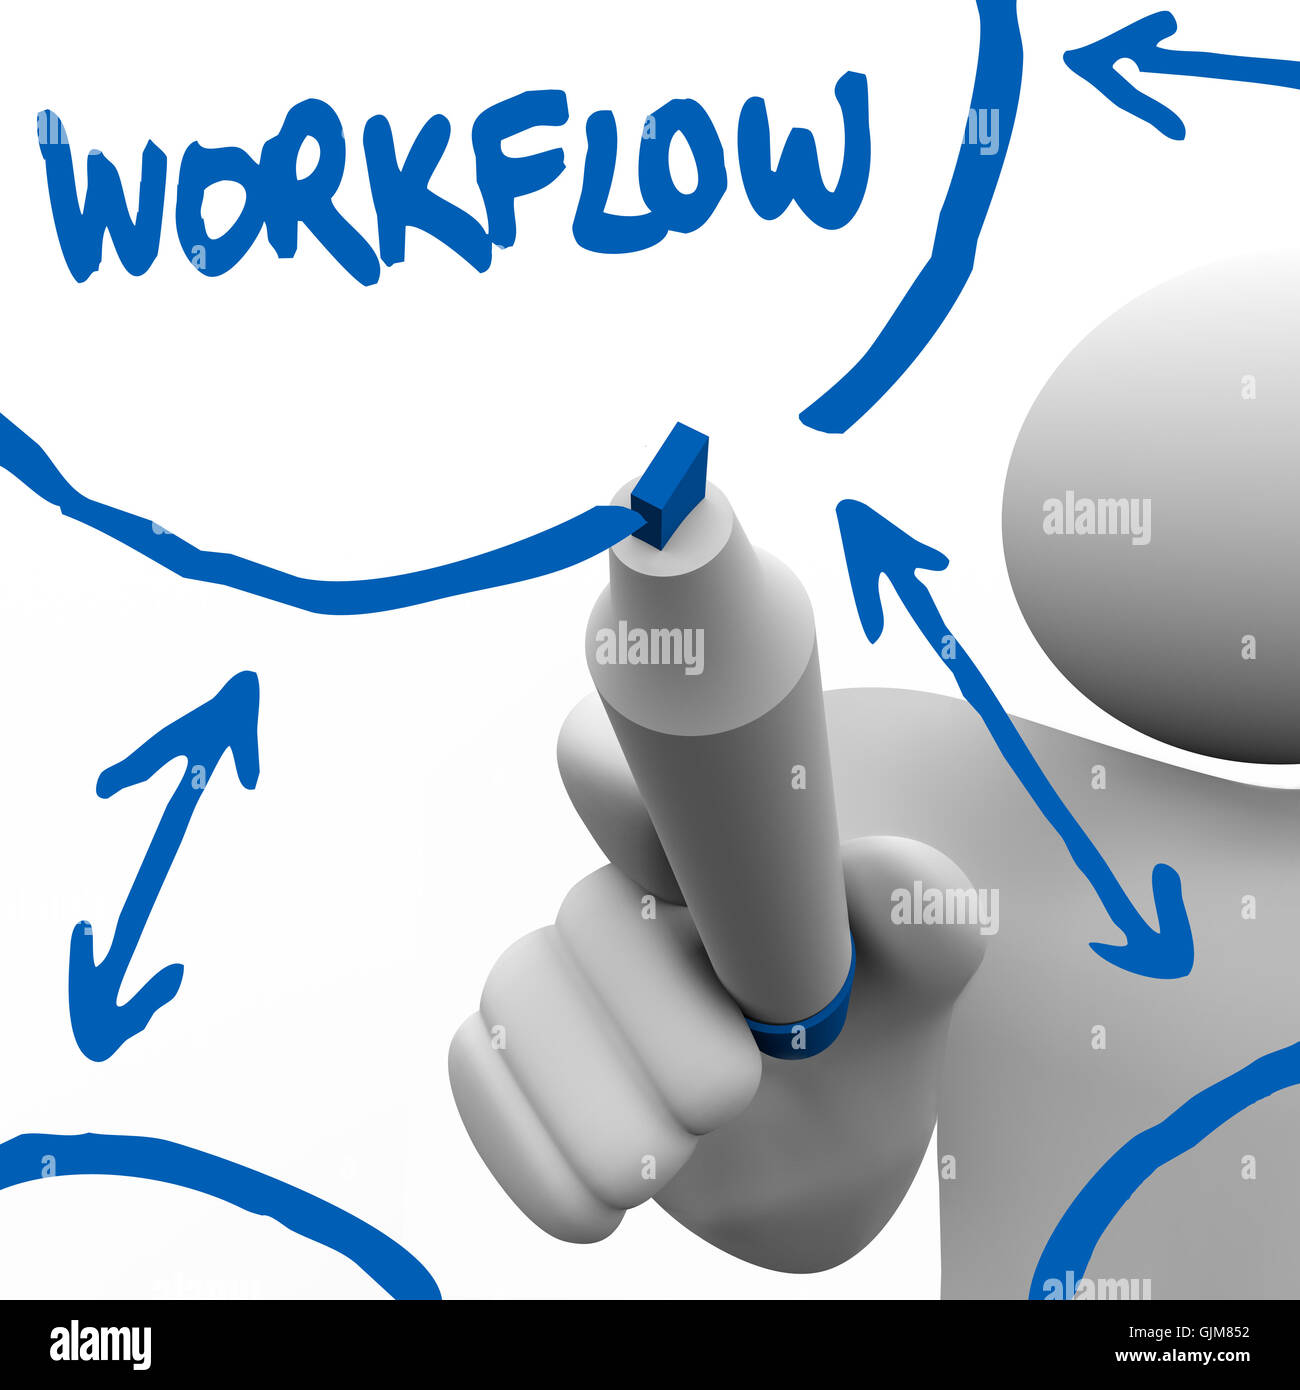 Workflow person writing diagram for work process on board stock workflow person writing diagram for work process on board ccuart Choice Image